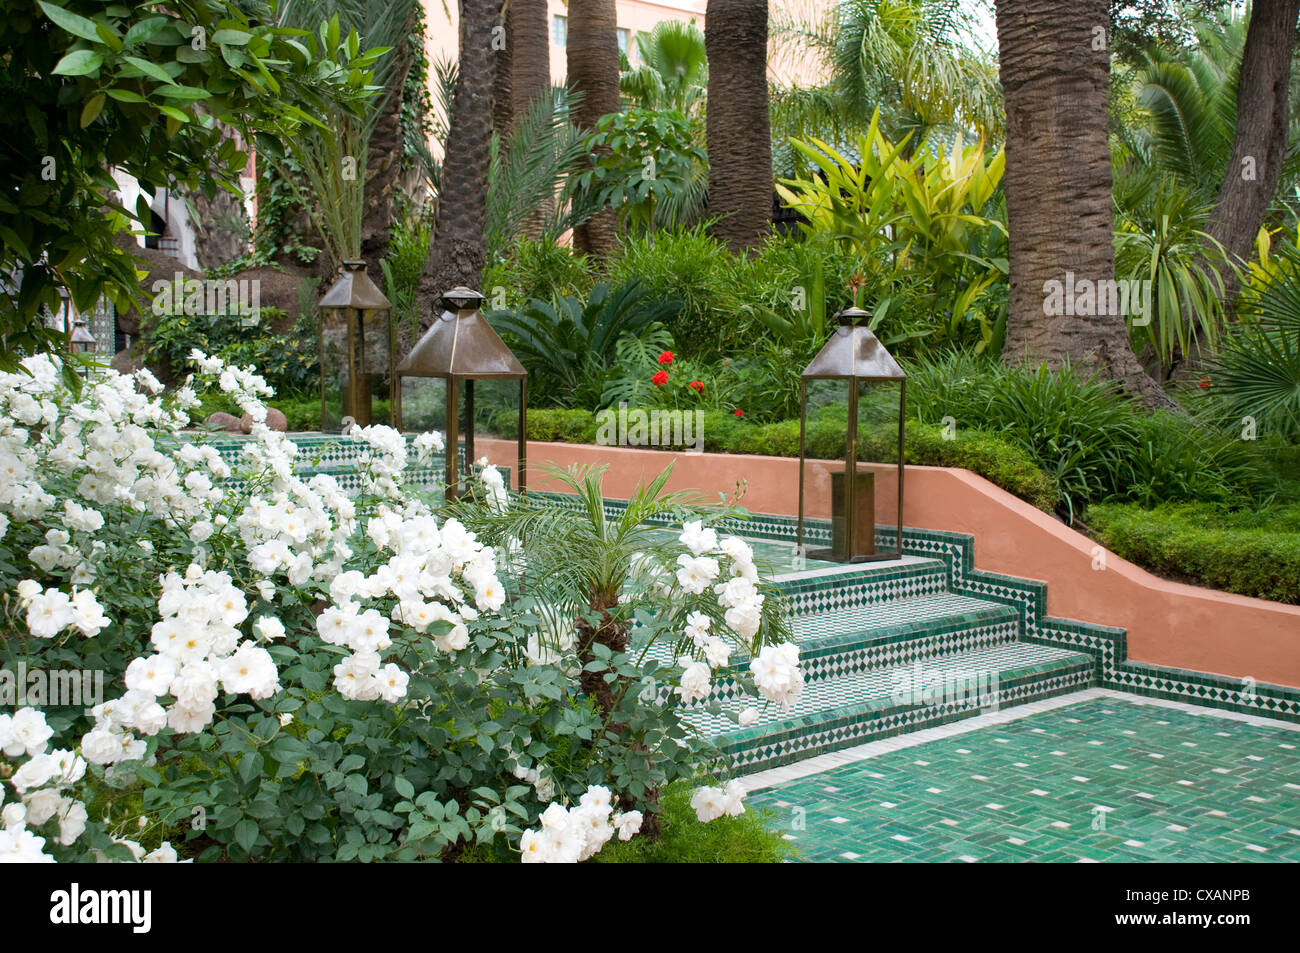 white roses and palm trees in the garden at la mamounia hotel in